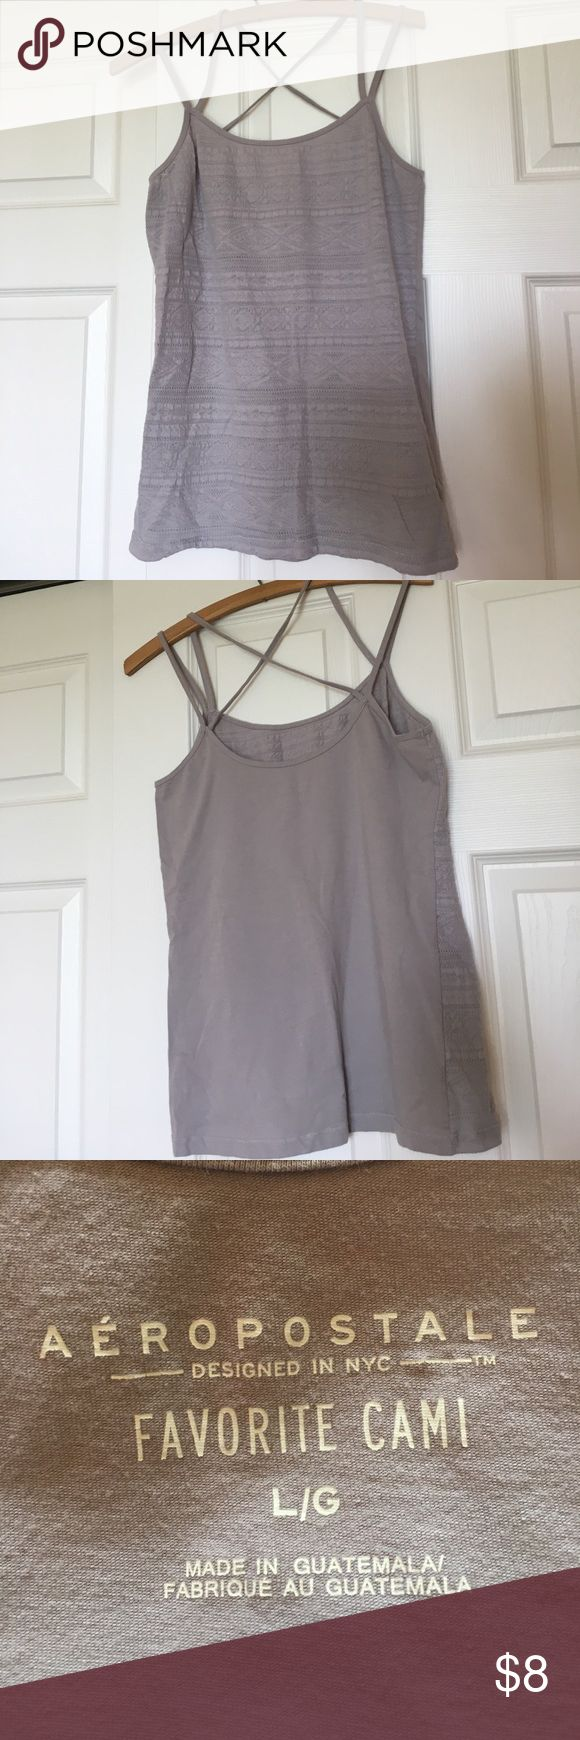 Strappy grey cami with front fabric design Aeropostale favorite cami in Large with fun front fabric design. Aeropostale Tops Camisoles